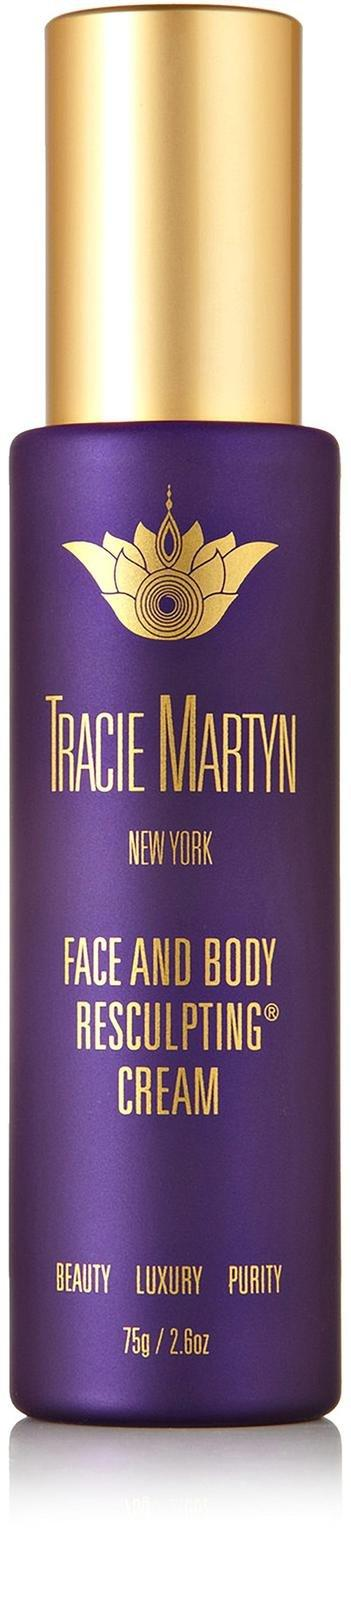 Tracie Martyn Face And Body Resculpting Cream